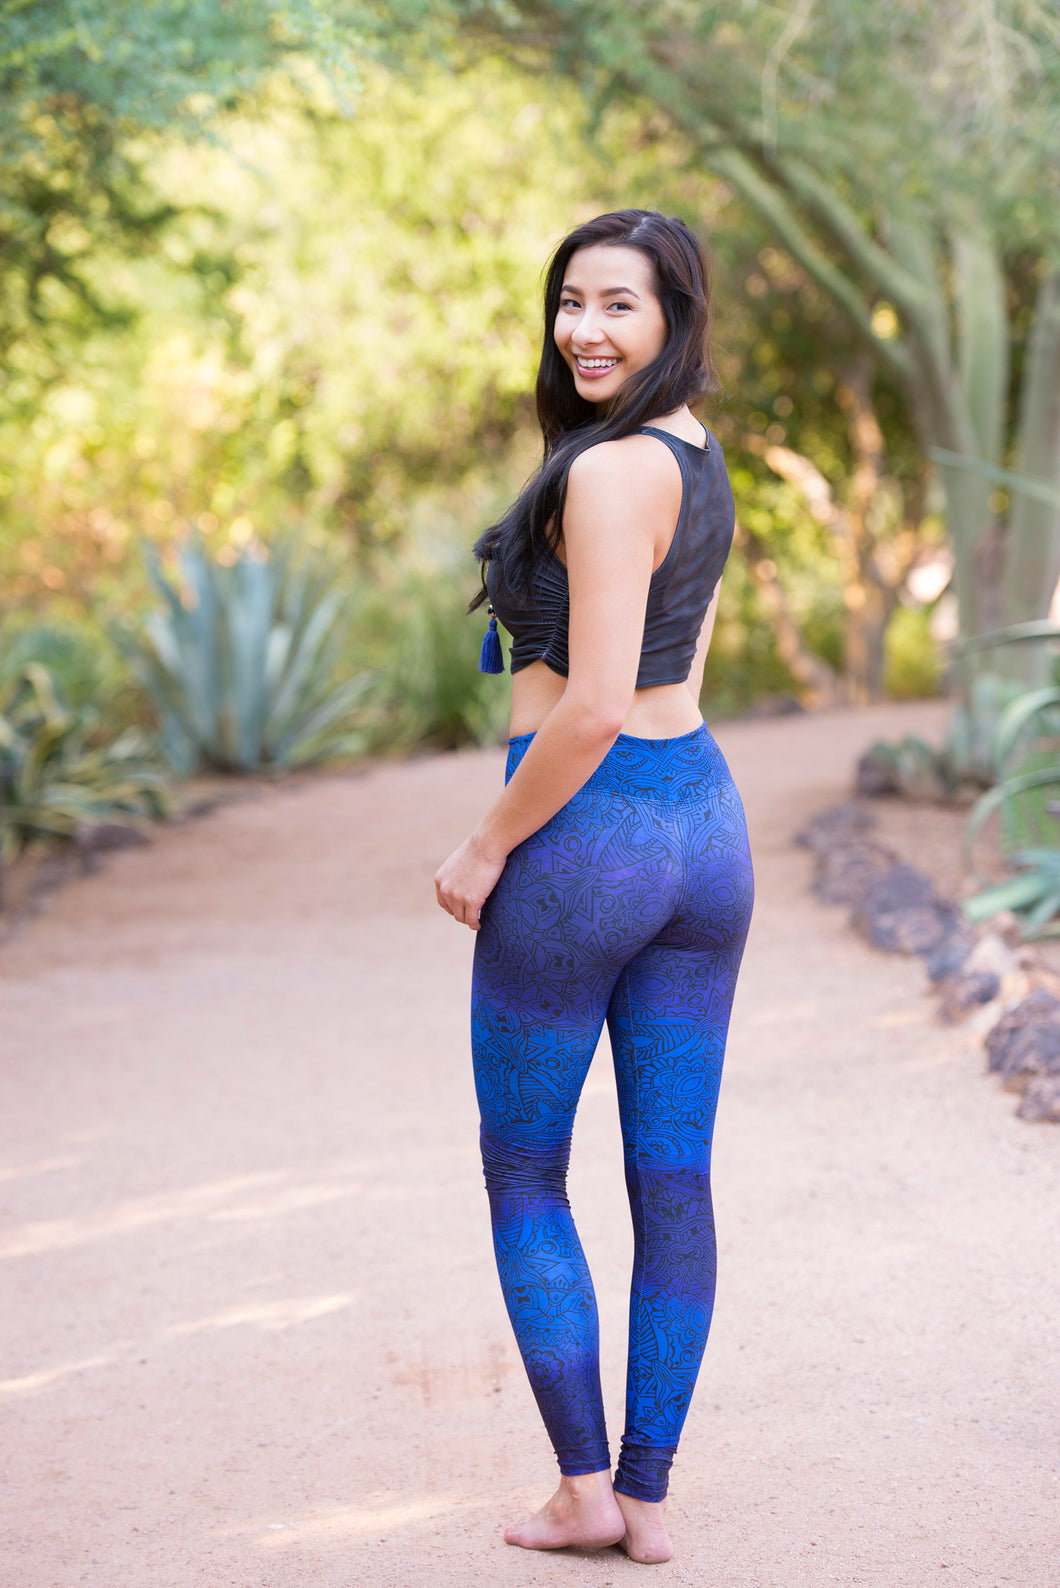 Blue Wonder - Yoga Pants